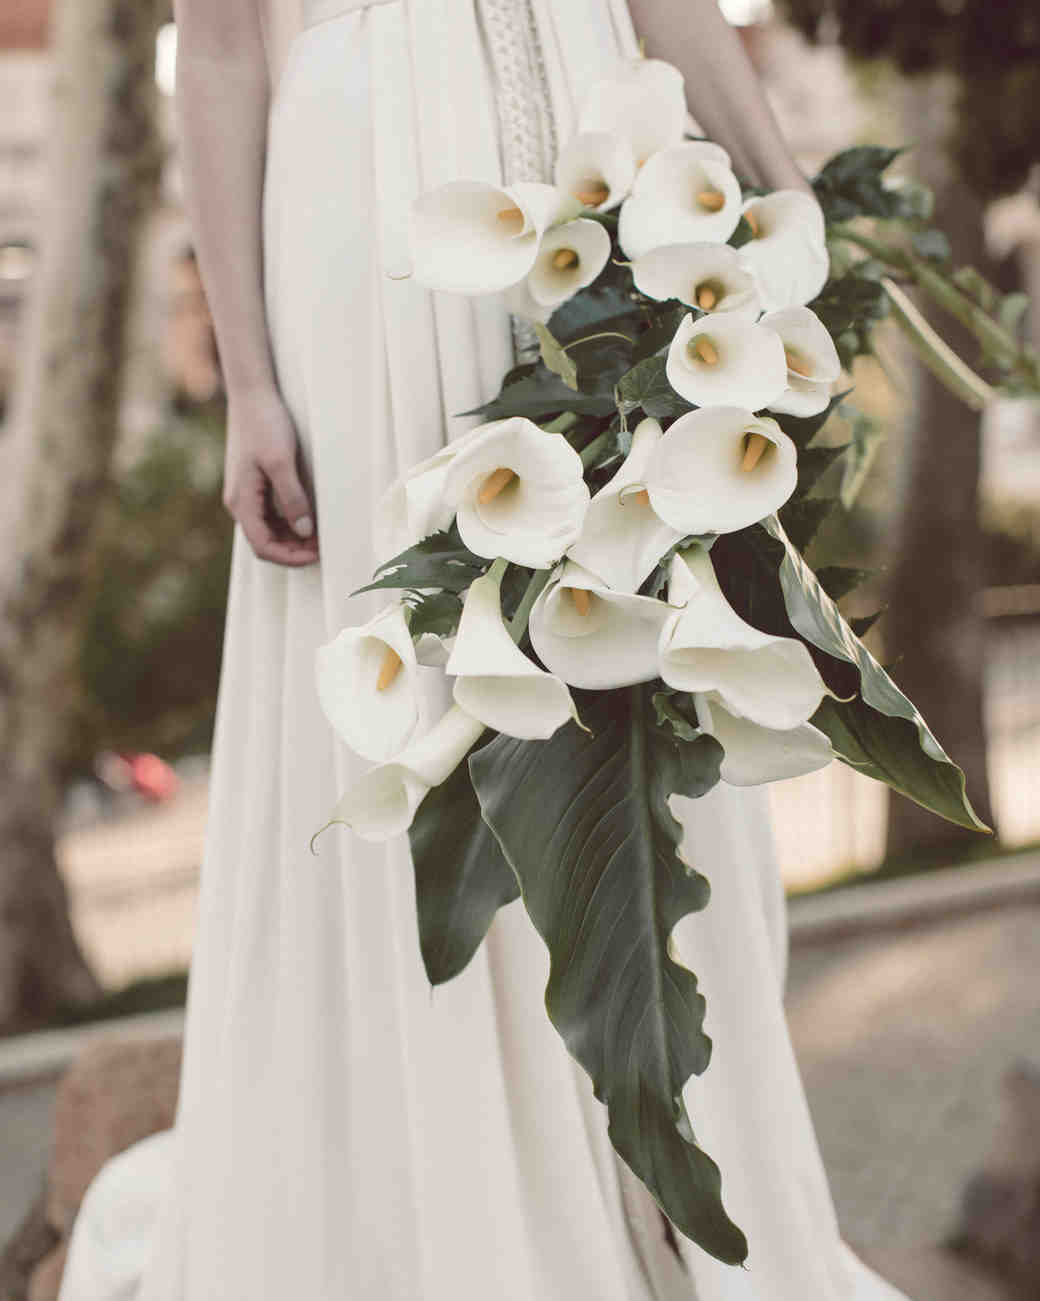 large bouquet with calla lilies and leaves